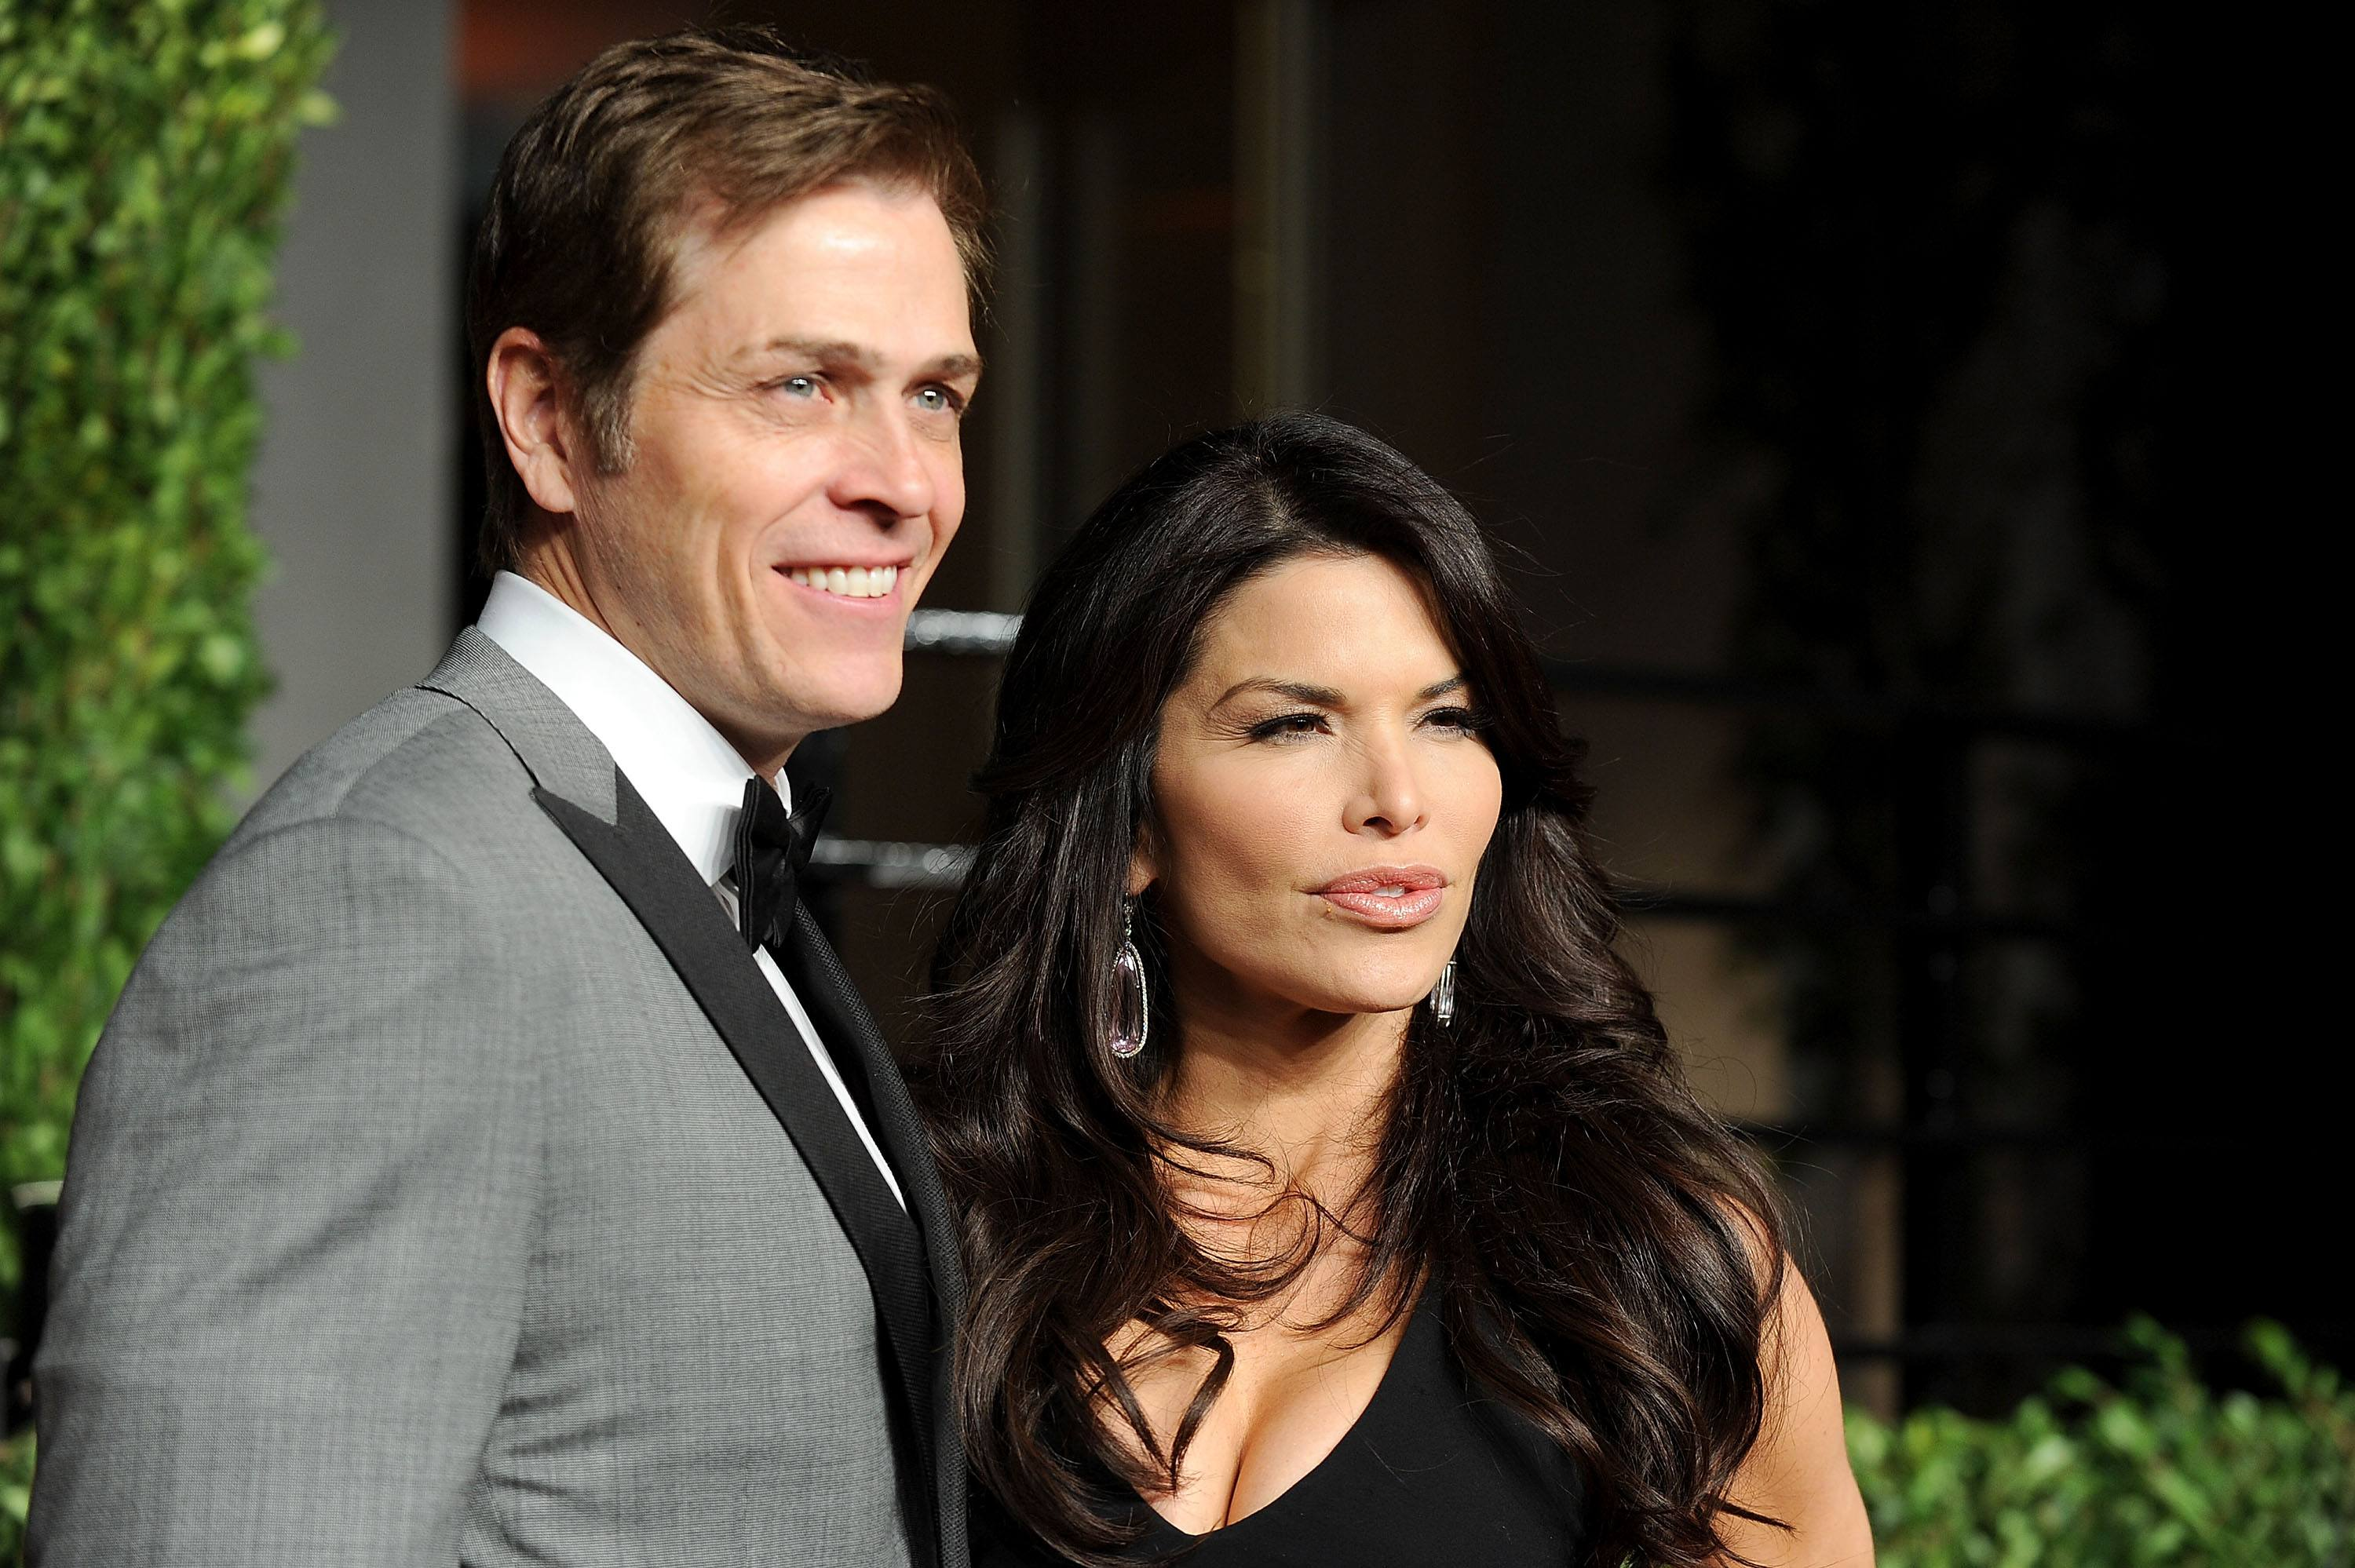 Patrick Whitesell and Lauren Sanchez arrive at the Vanity Fair Oscar party